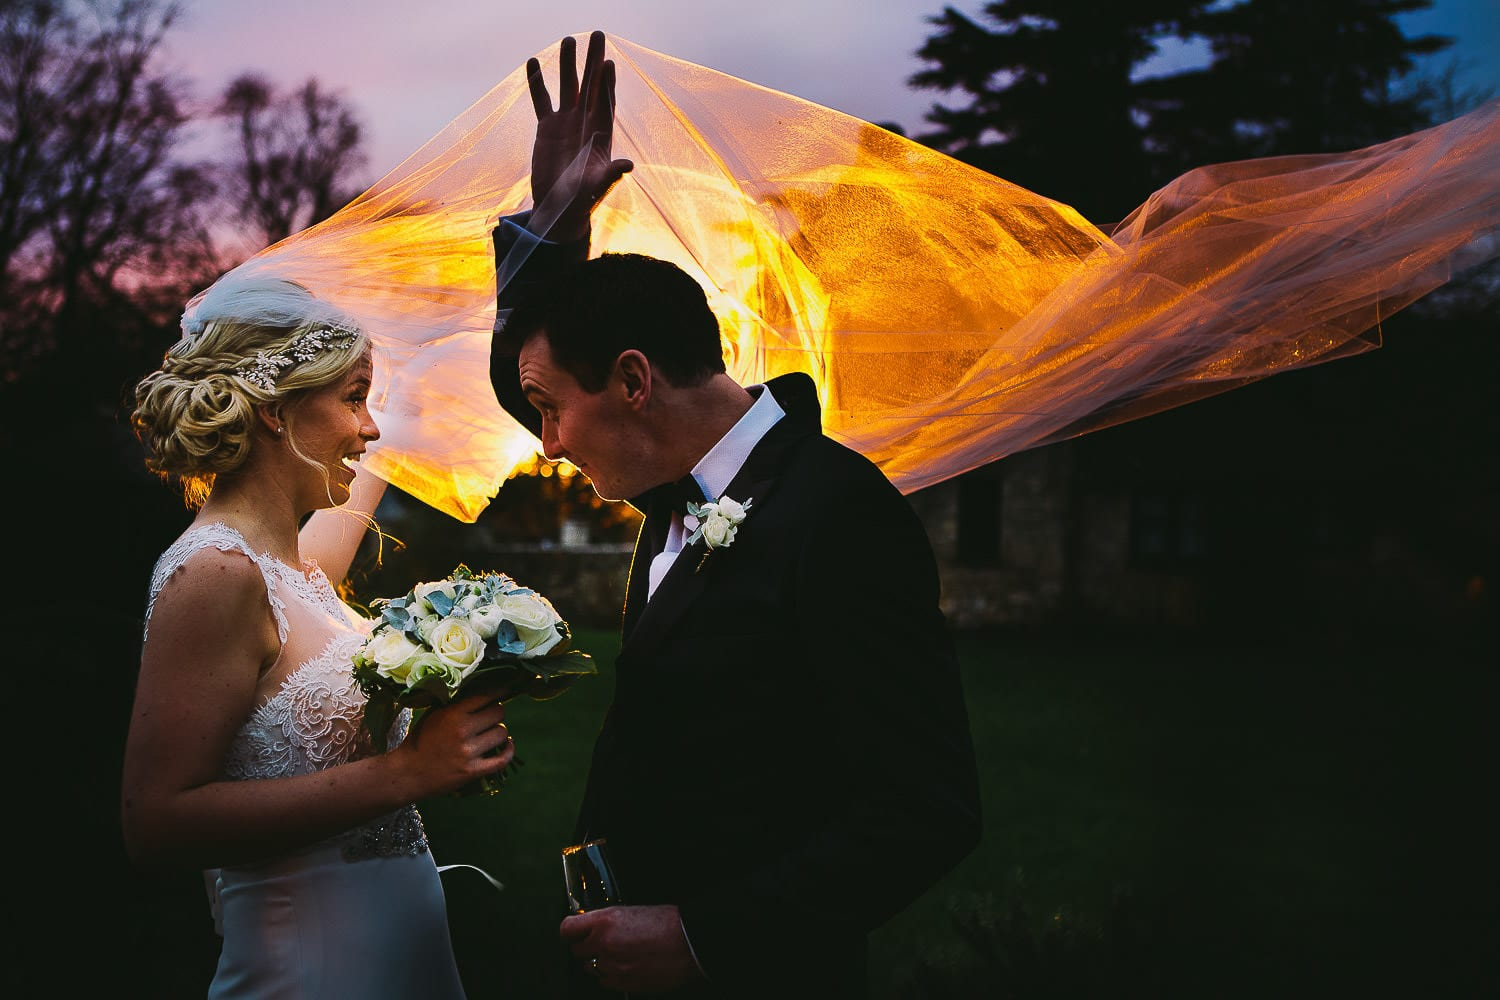 Image of the bride's veil blowing over grooms head in the sunset